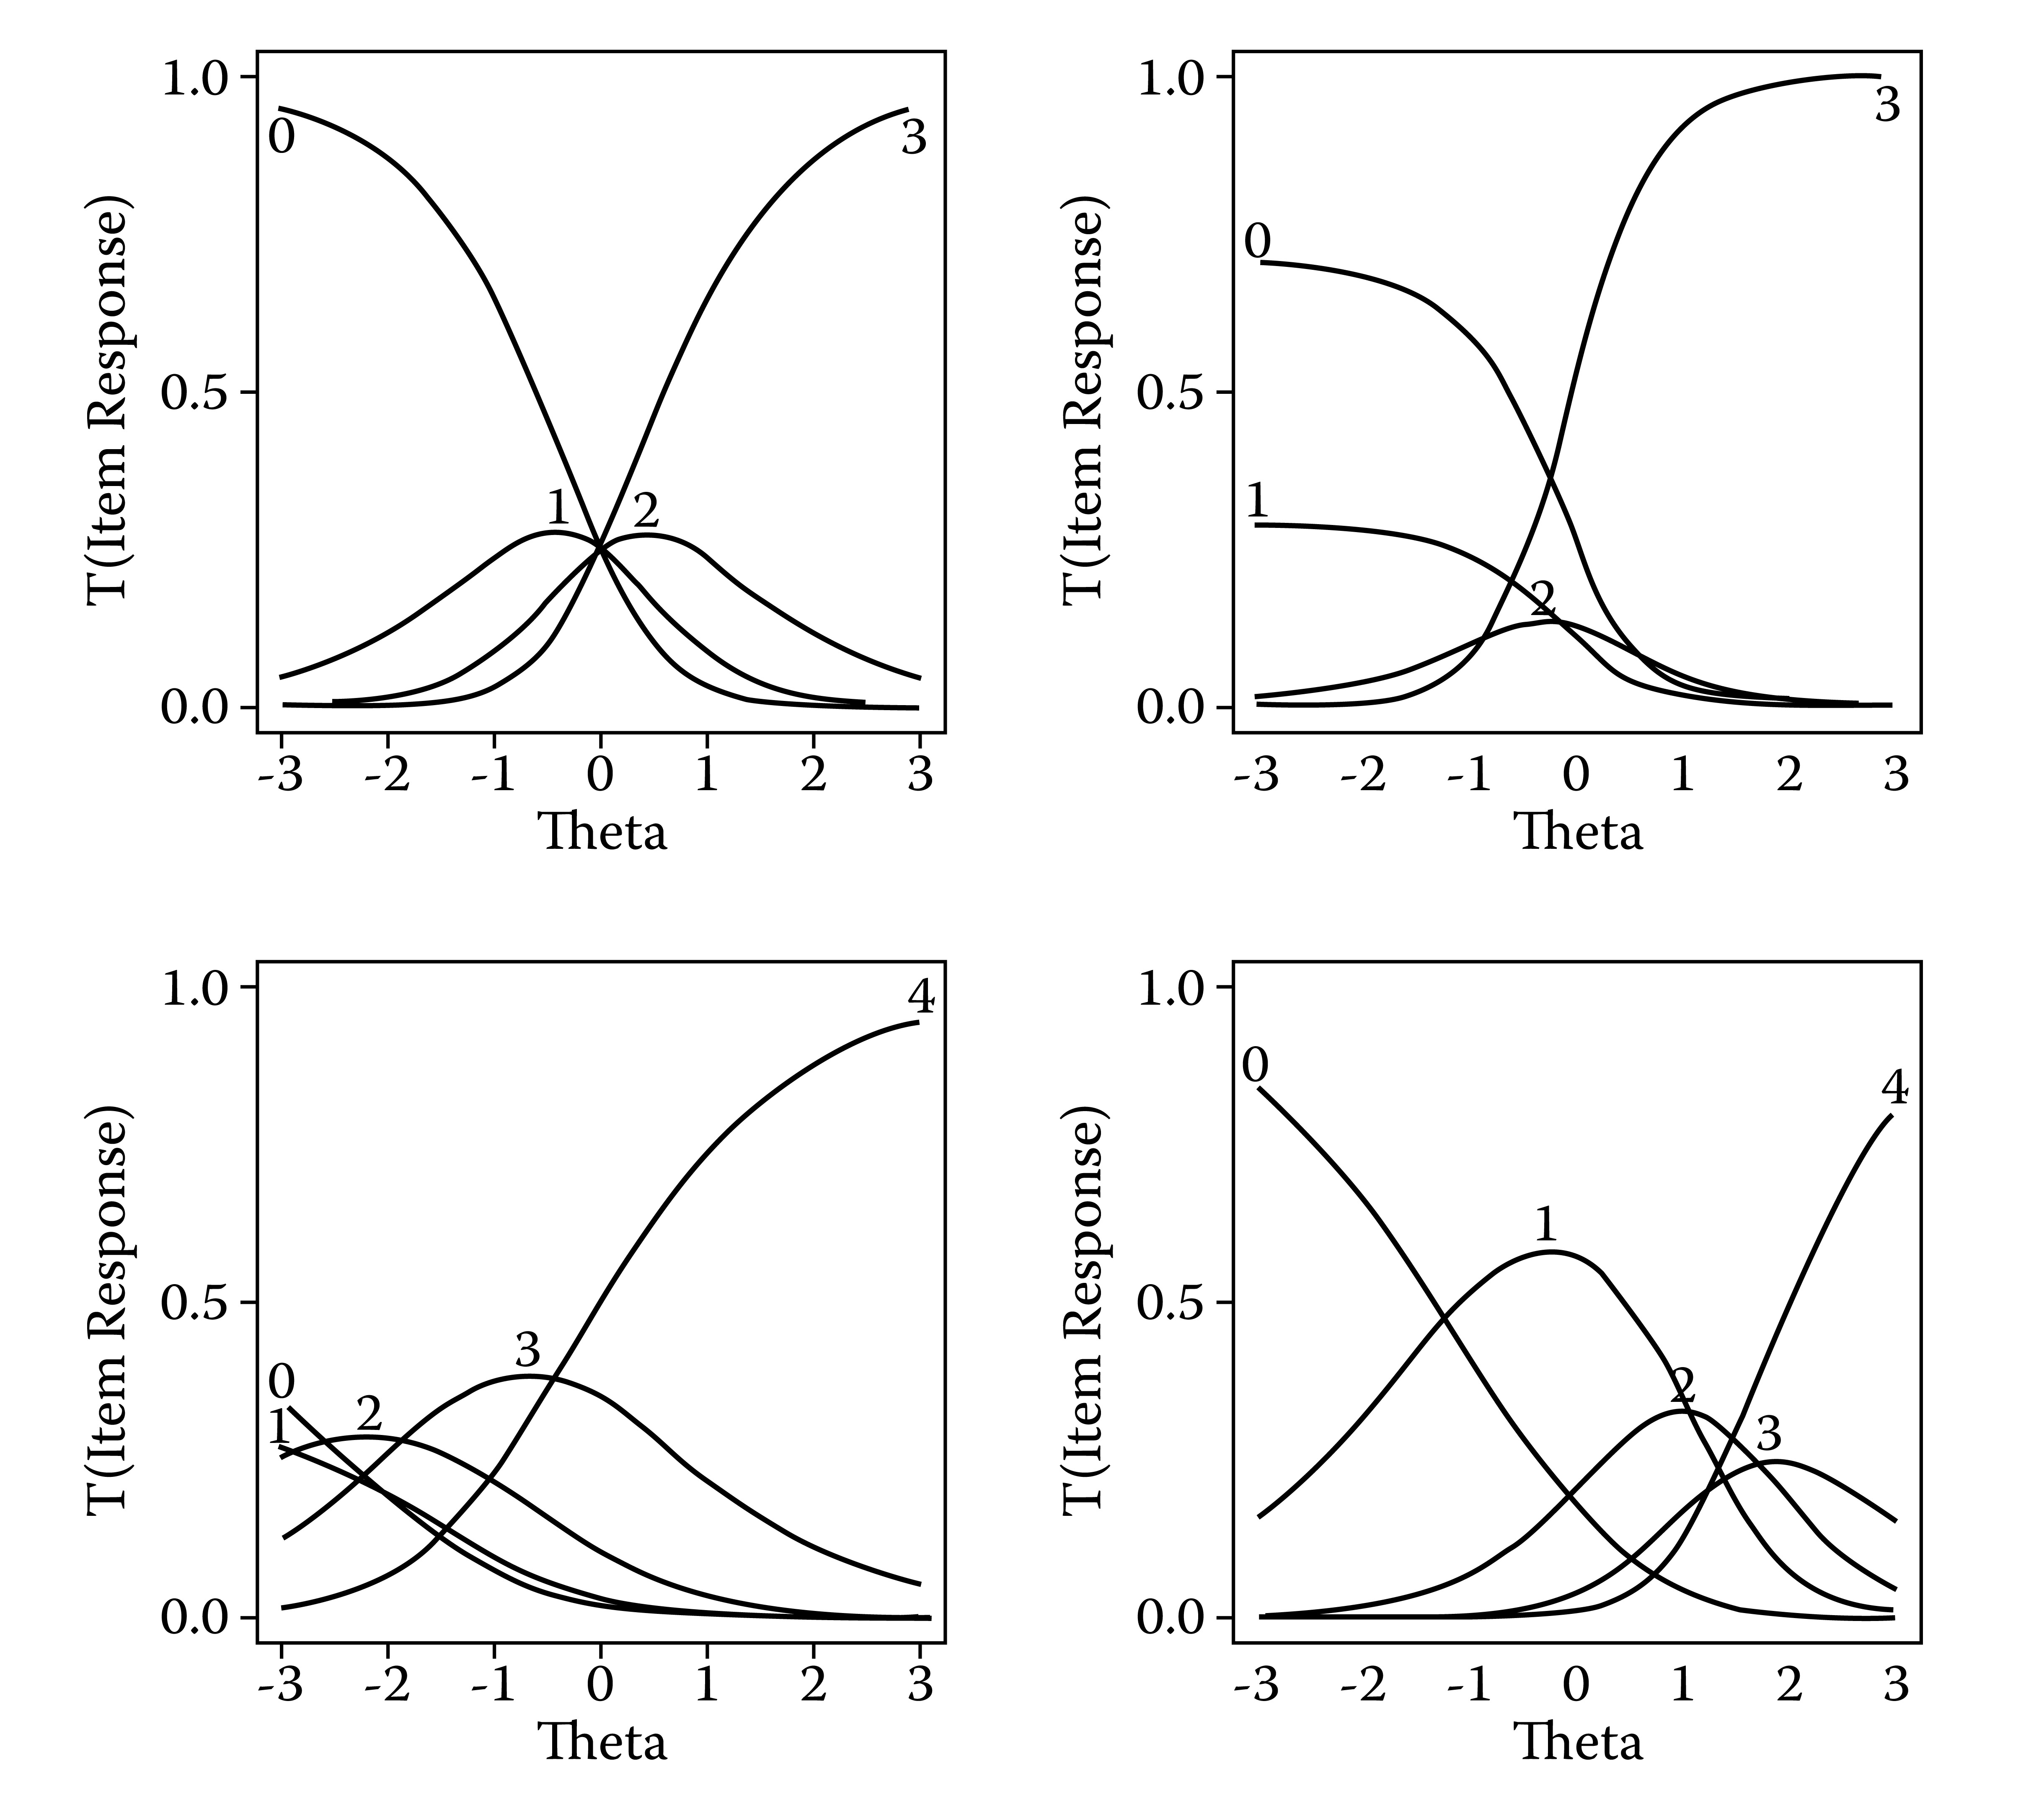 "Upper left: Trace lines for an artificially constructed four-alternative item. Upper right: Trace lines for the ""Identify"" testlet described by Thissen and Steinberg (1988). Lower left: Trace lines for the number correct on questions following a passage on a reading comprehension test, using parameter estimates obtained by Thissen, Steinberg, and Mooney (1989). Lower right: Trace lines for judge-scored constructed-response item M075101 from the 1996 administration of the NAEP mathematics assessment"